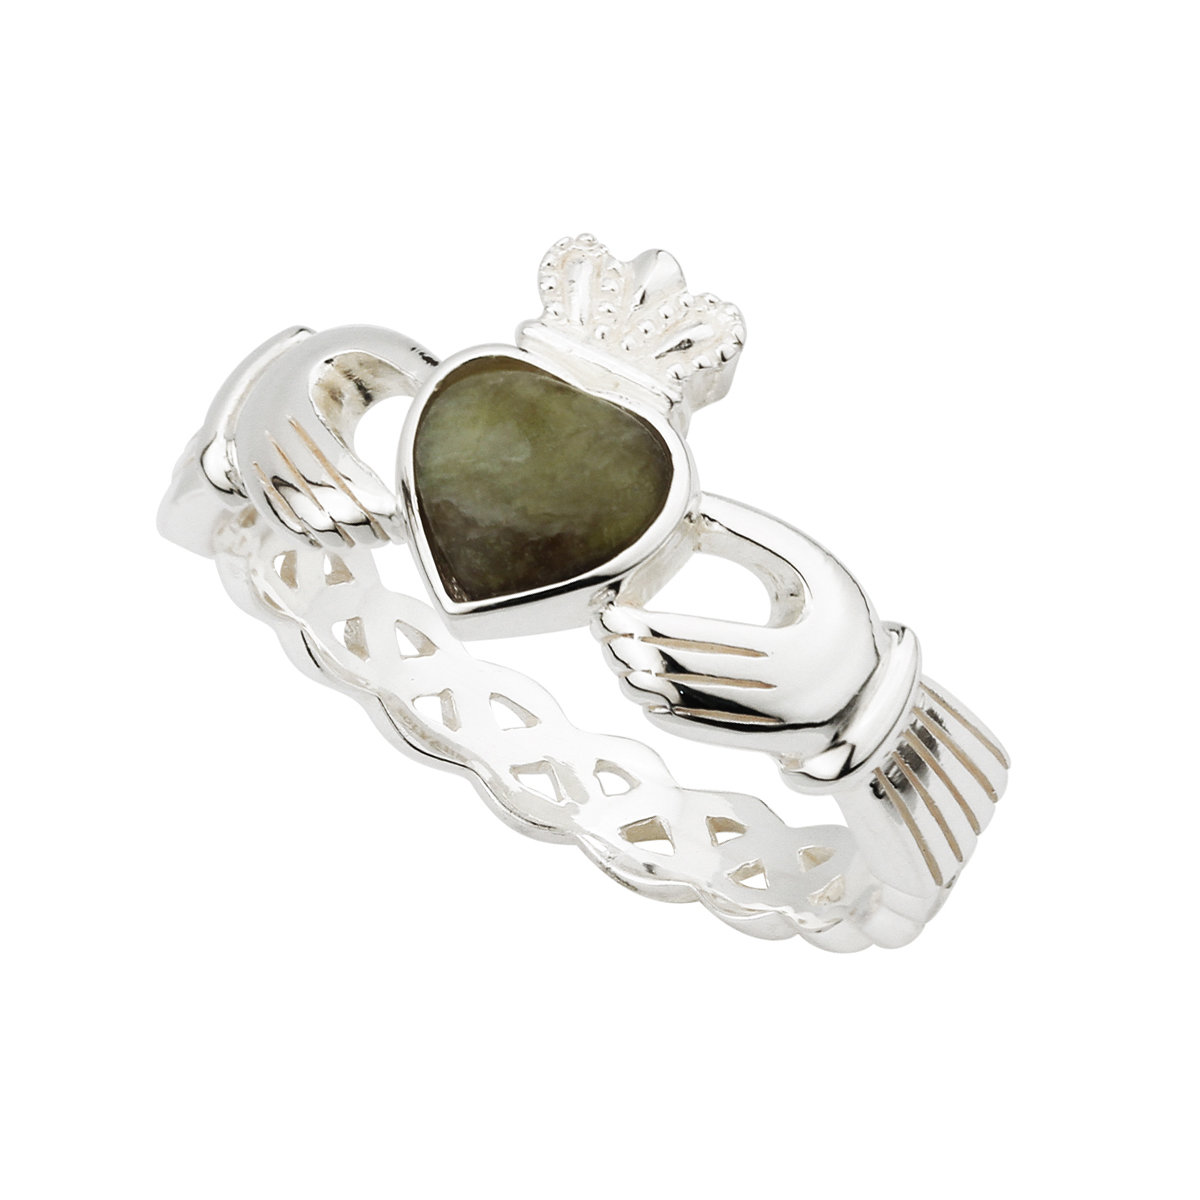 sterling silver connemara marble claddagh weave ring s2887 from Solvar